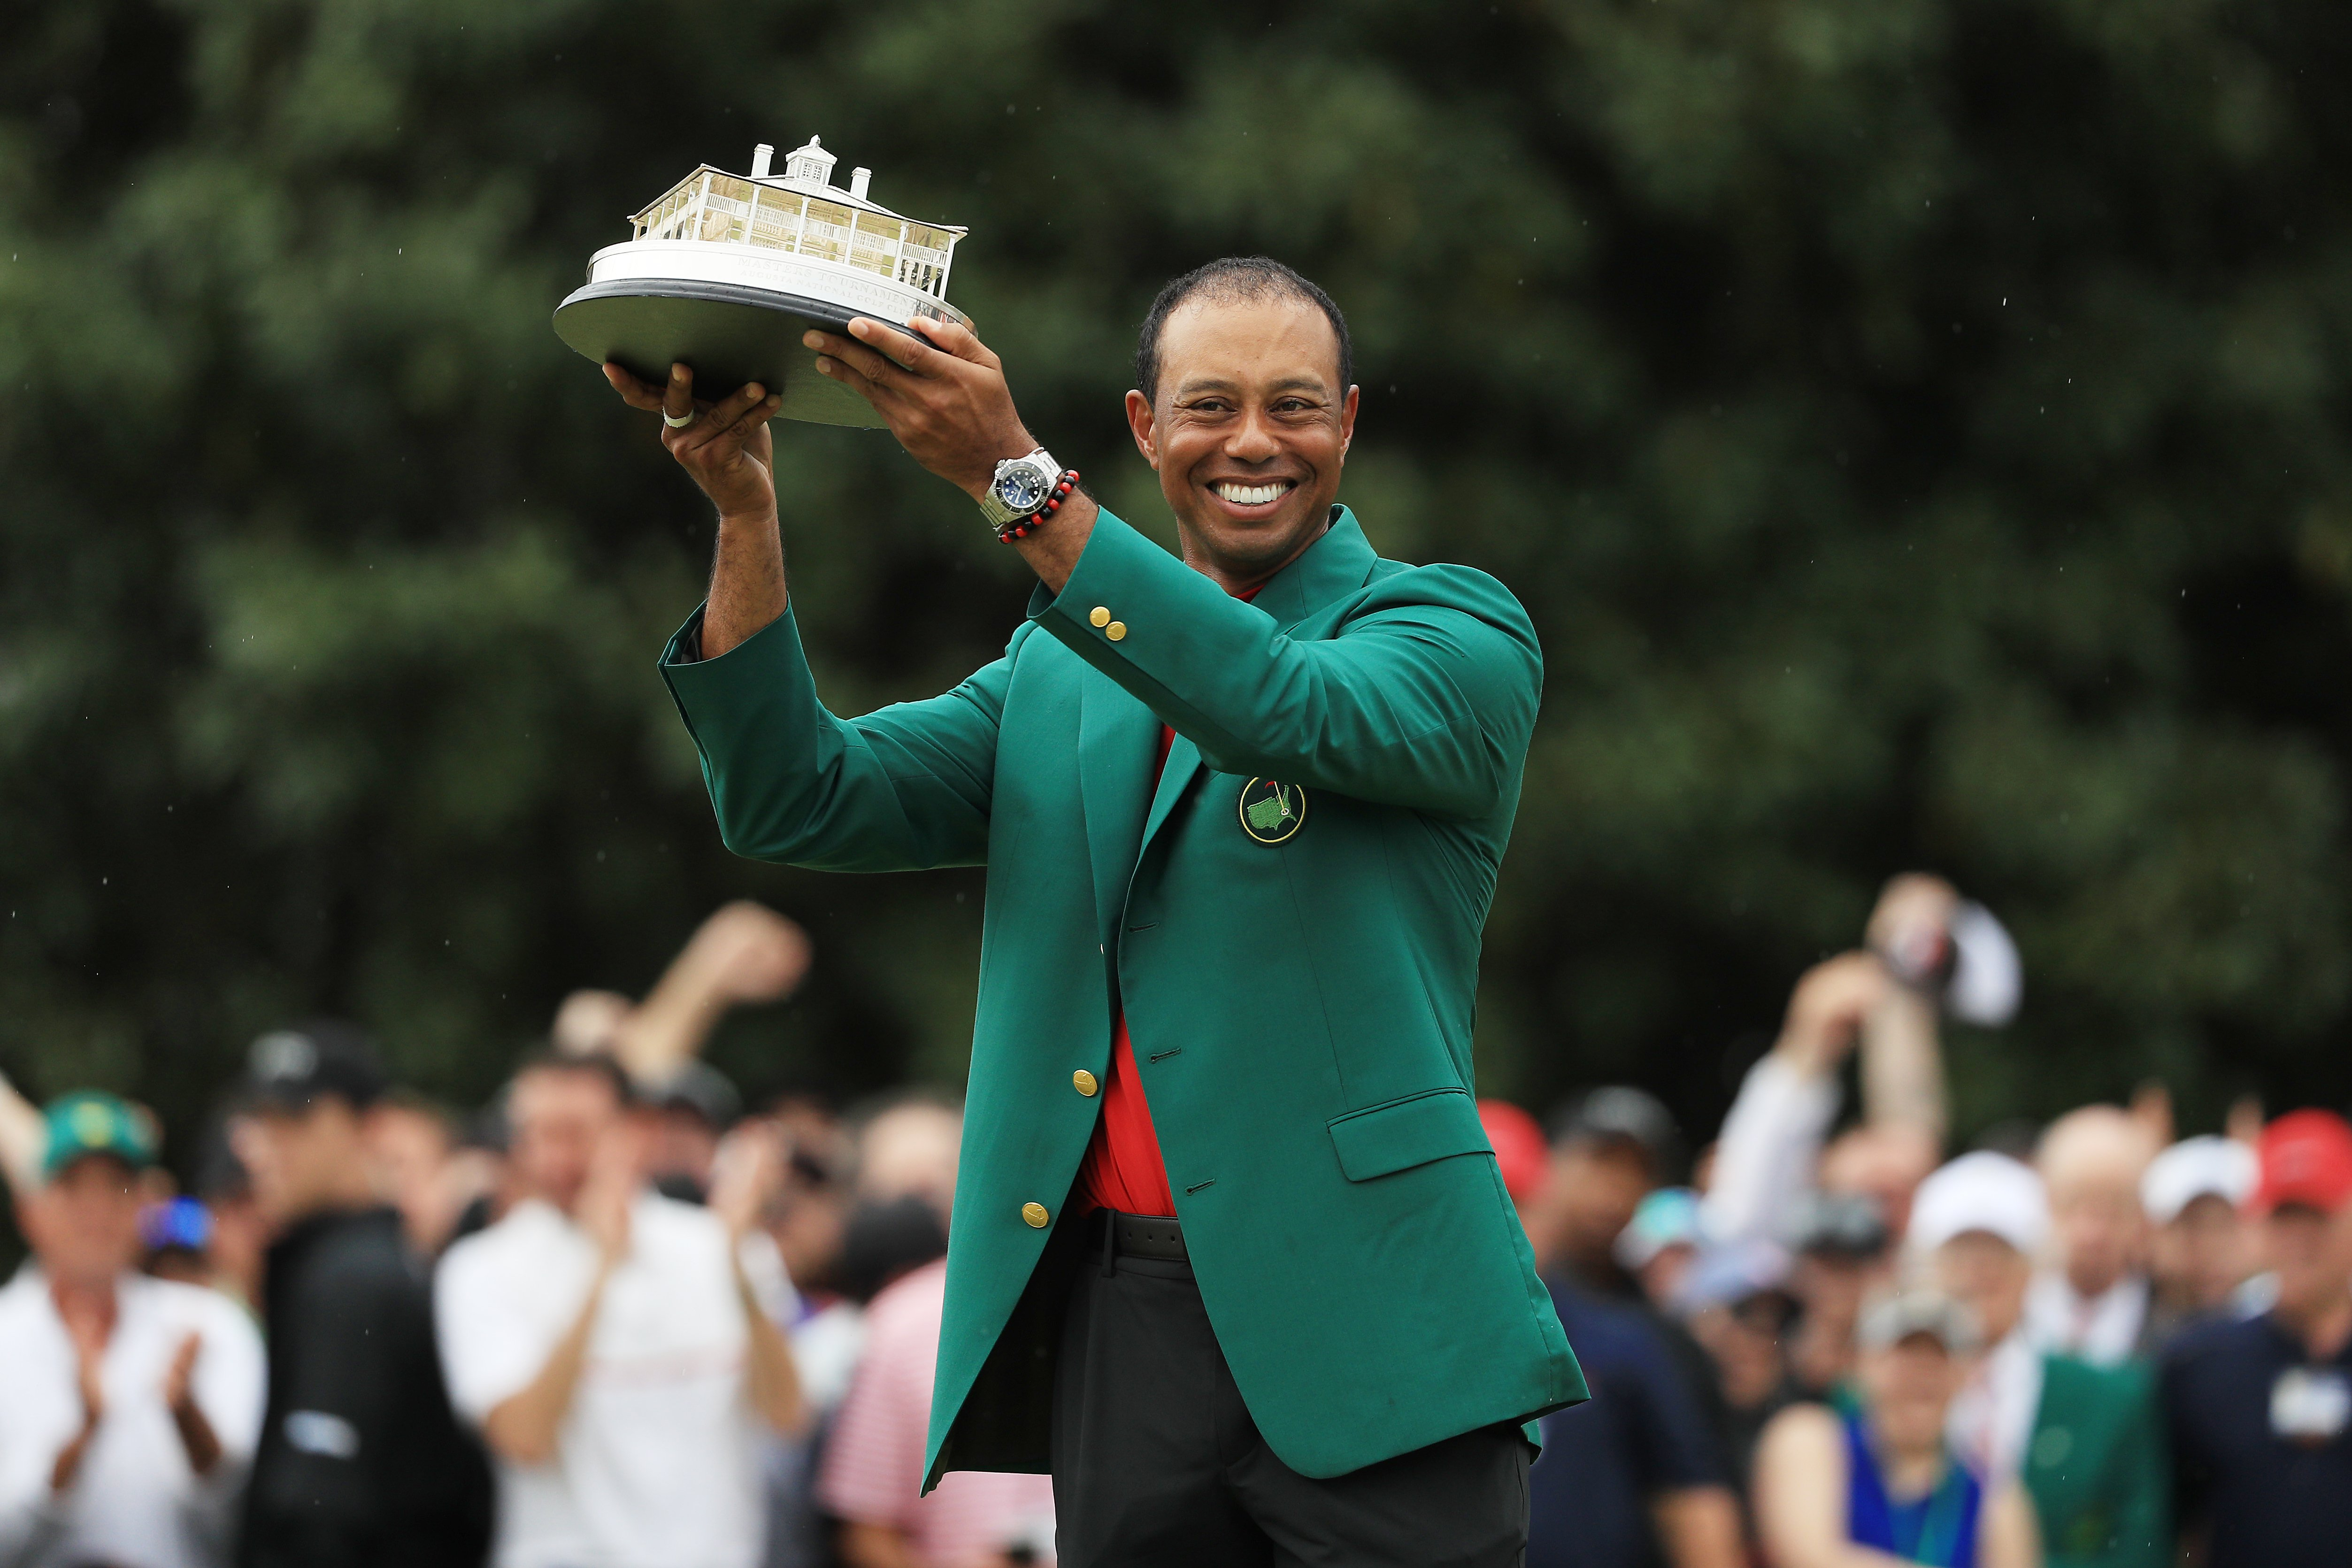 Image Credits: Getty Images / Mike Ehrmann | Tiger Woods of the United States celebrates with the Masters Trophy during the Green Jacket Ceremony after winning the Masters at Augusta National Golf Club on April 14, 2019 in Augusta, Georgia.